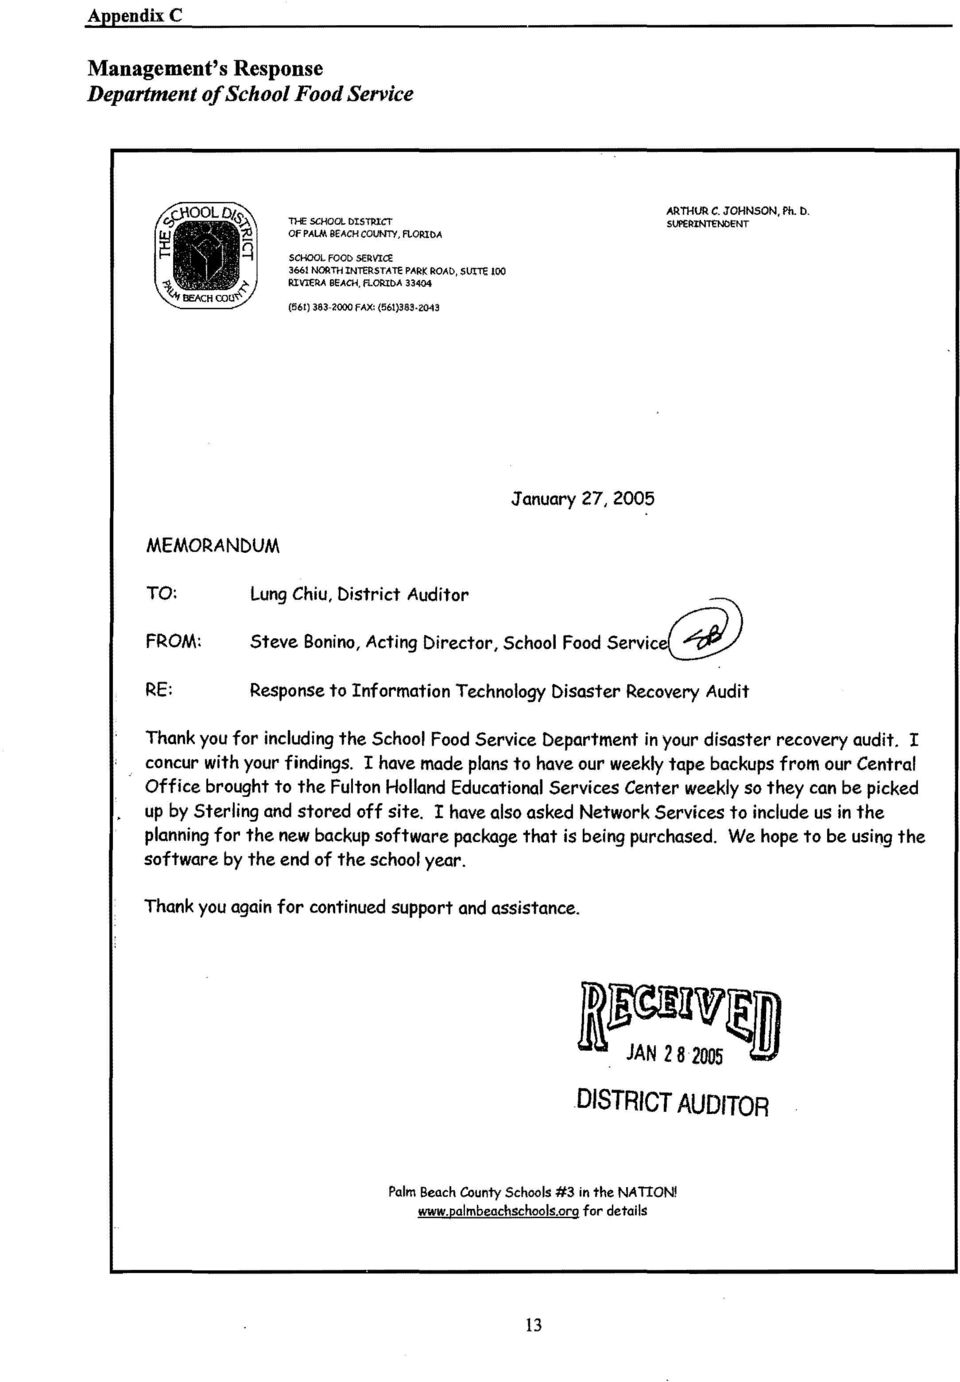 ORlM 33404 (561) 383-200c fax: (561)383,0043 January 27, 2005 MEMORANDUM TO: FROM: RE: Lung Chiu, District Auditor Steve Bonino, Acting Director, School Food servi@ Response to Information Technology